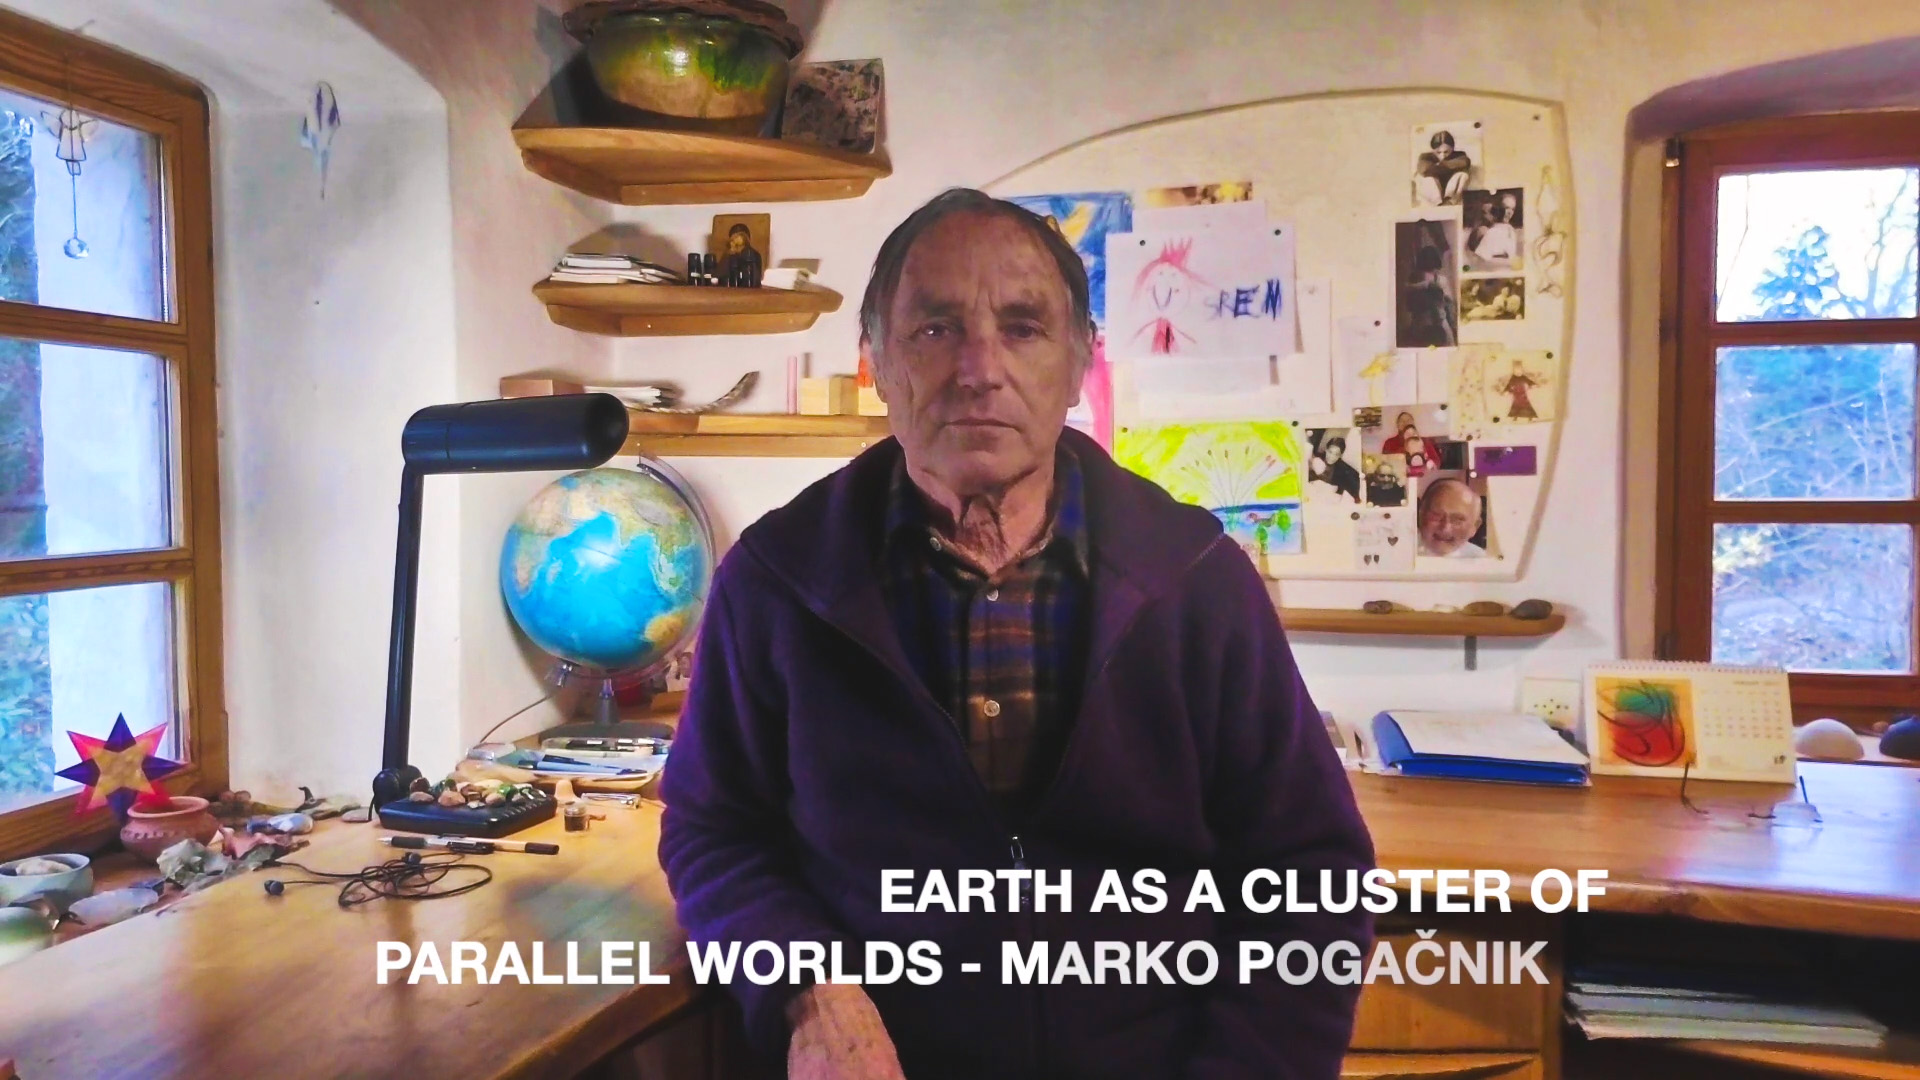 Earth as a cluster of parallel worlds